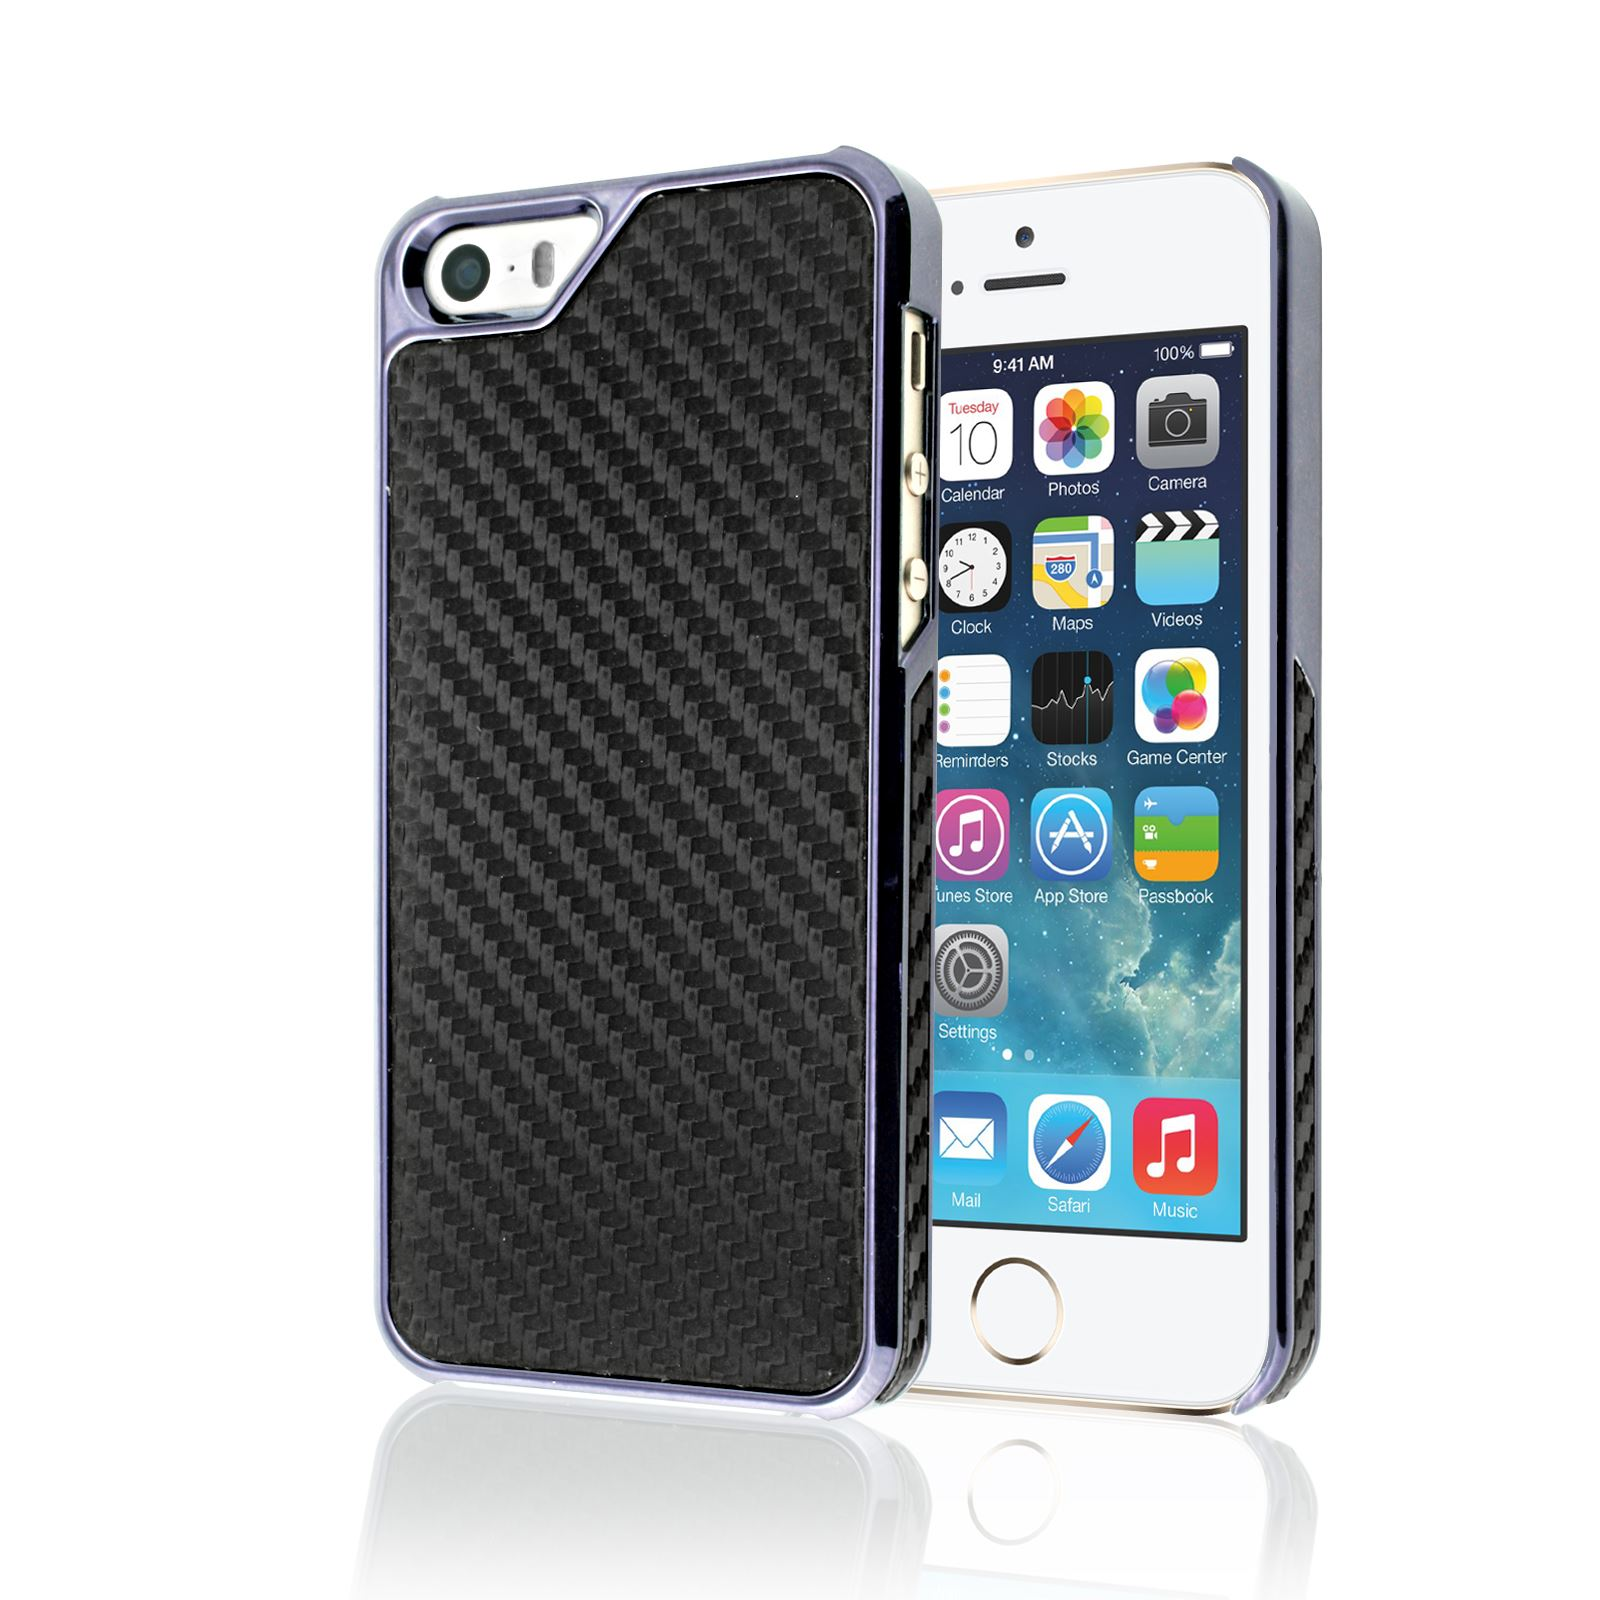 Carbon fibre plastic metal style case protector back cover for Case in metallo stile ranch